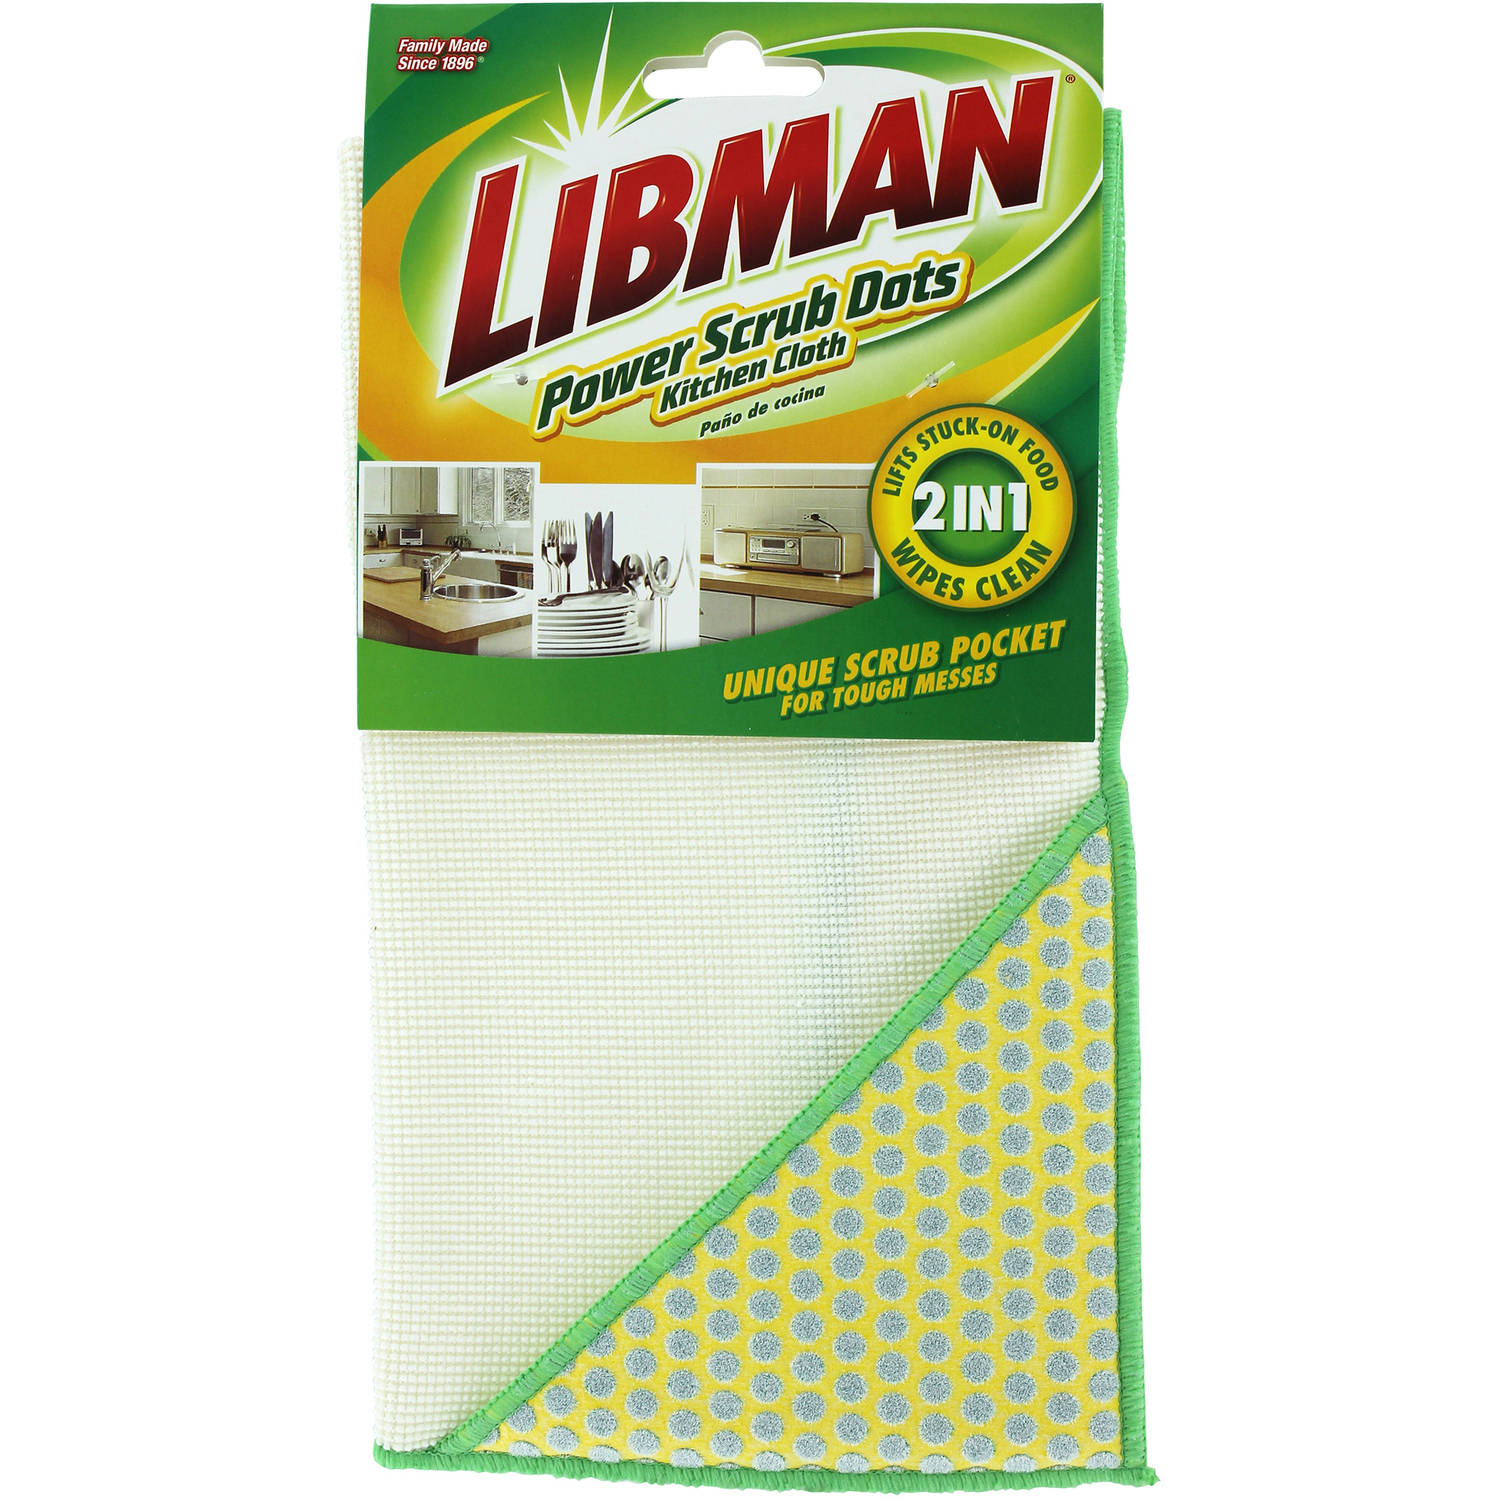 Libman Power Scrub Dots Kitchen Cloth